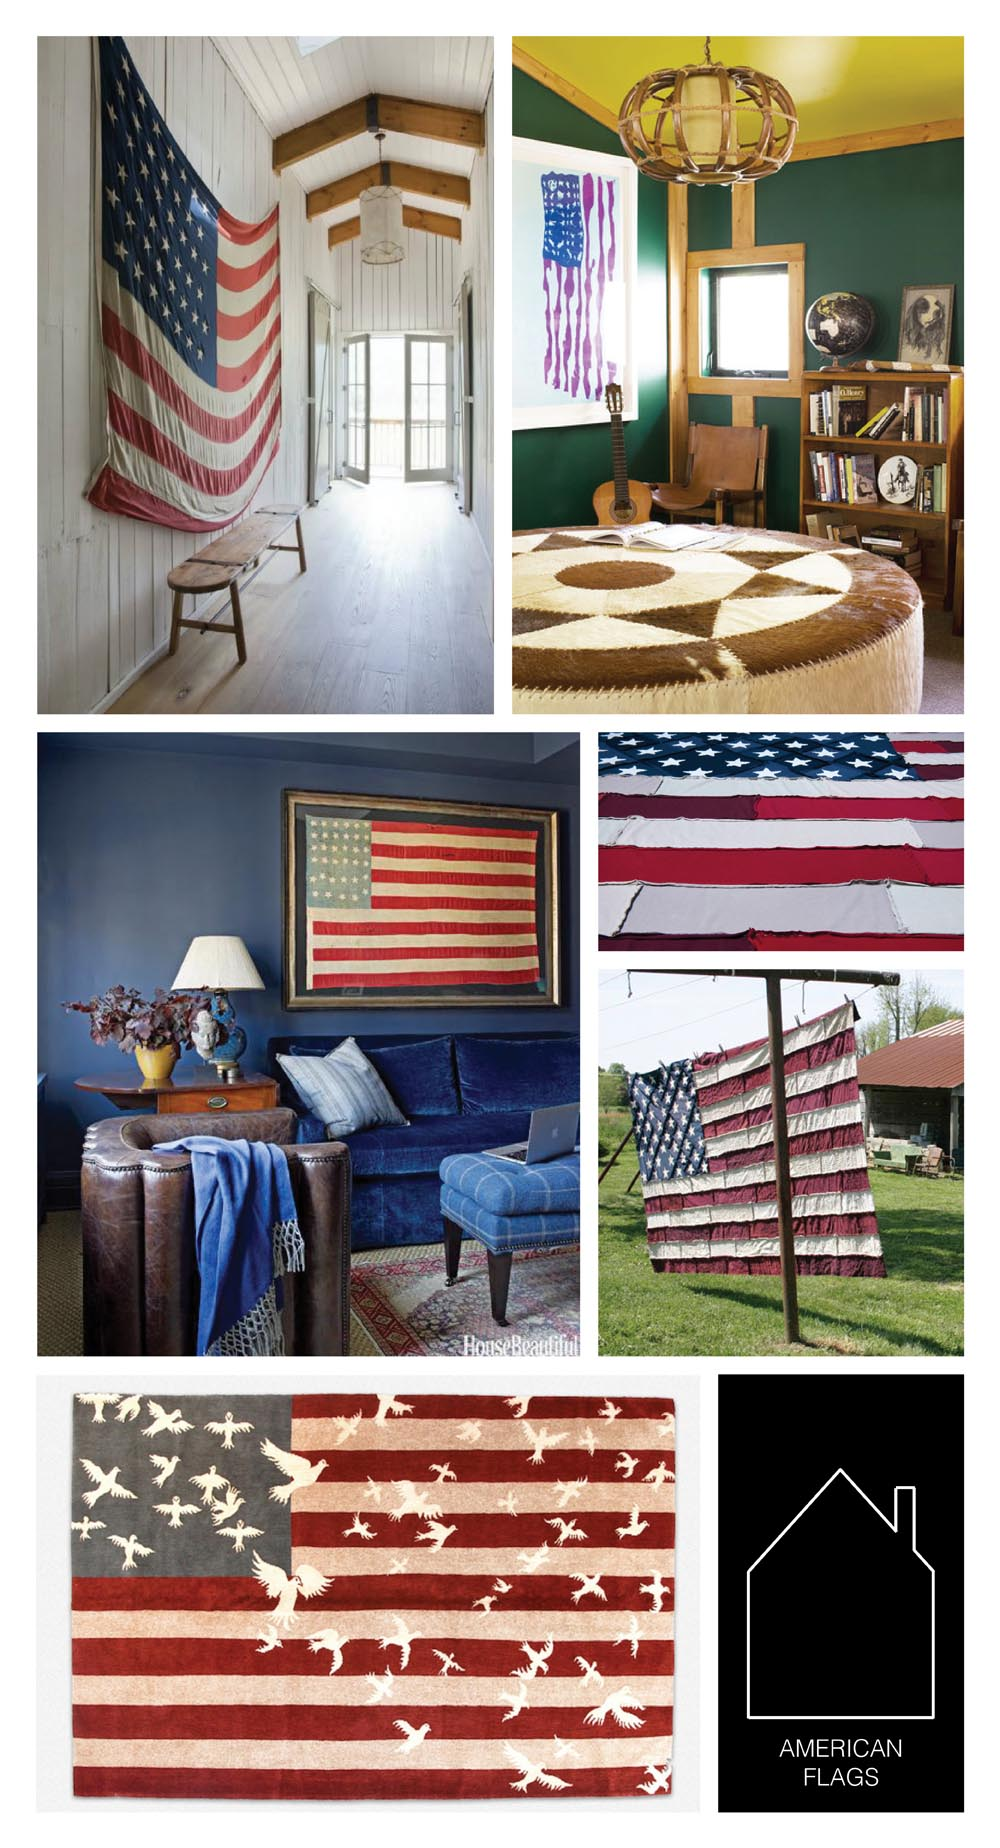 from top left  - design by  Rachel Halvorson Design - home of  Ruthie Sommers  via  Lonny - home of  Phoebe Howard  via  House Beautiful - American flag throw detail by  Alabama Chanin - American flag quilt by  Alabama Chanin  - Doves and Stripes rug by  Luke Irwin  via  REMODELISTA